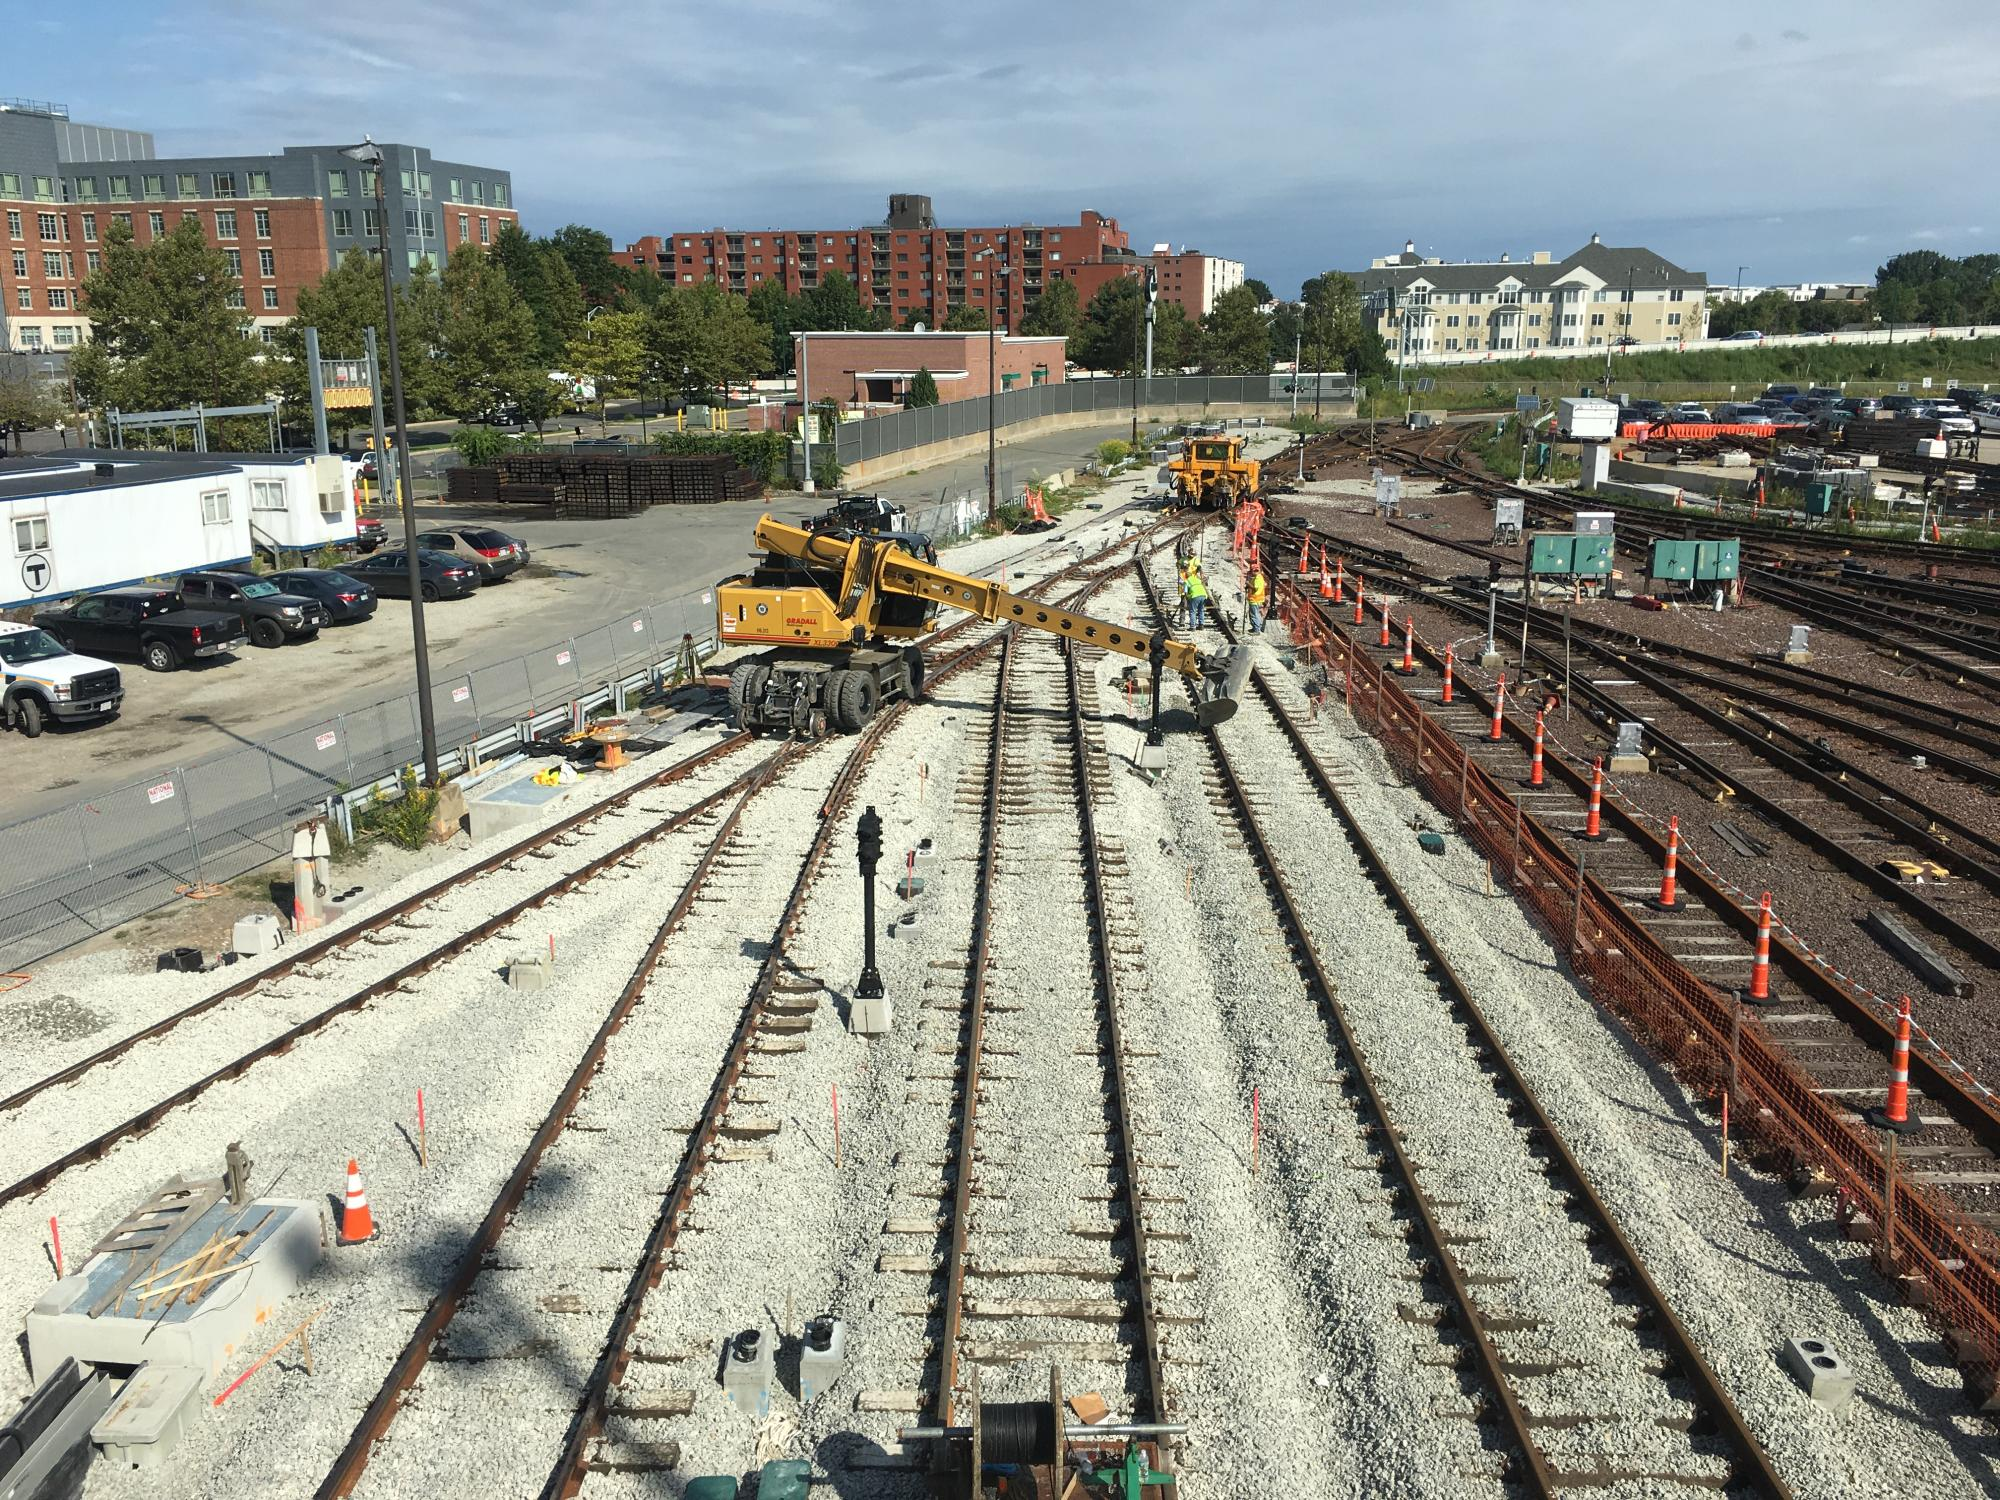 Wellington Yard expansion tracks 33 to 38: Installation of new turnouts, track, and ballast (September 2018)